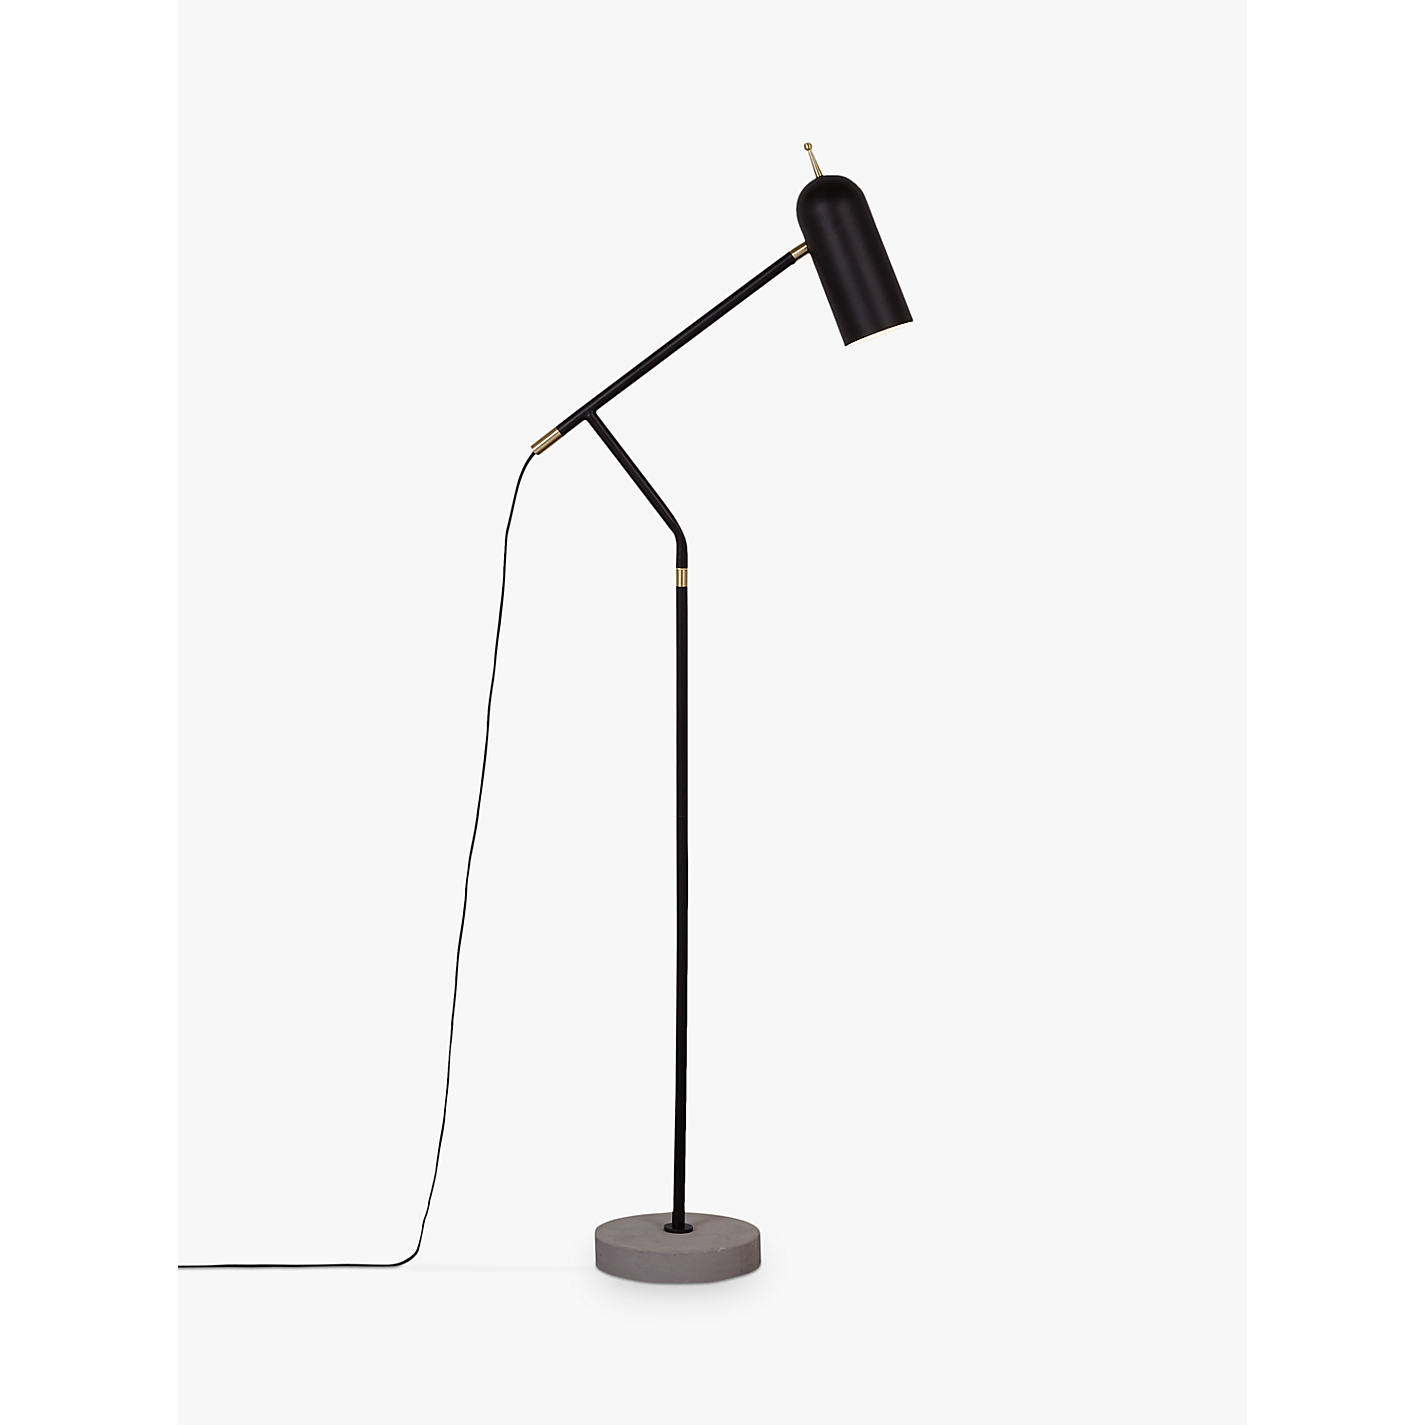 Buy design project by john lewis no045 led floor lamp john lewis buy design project by john lewis no045 led floor lamp online at johnlewis aloadofball Choice Image